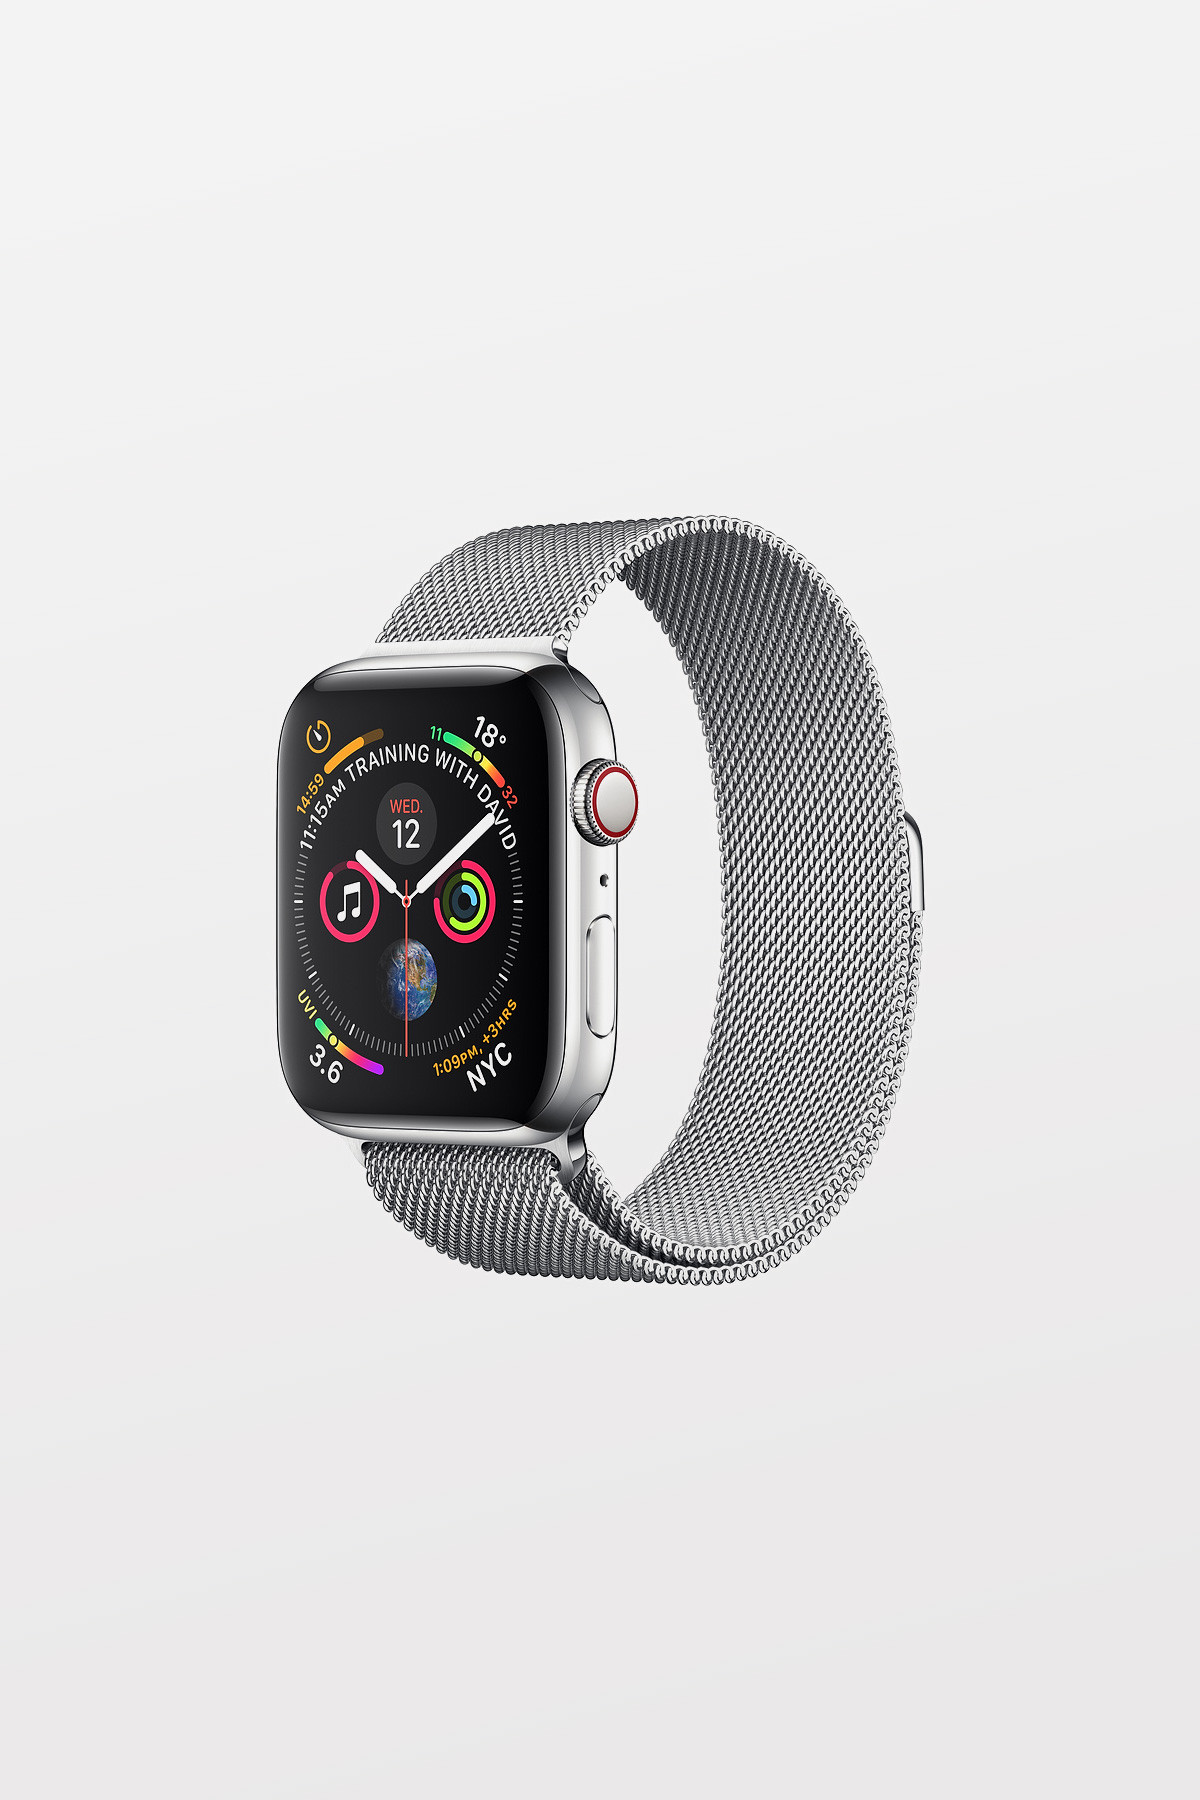 Apple Watch Series 4 Cellular - 44mm - Stainless Steel Case with Milanese Loop